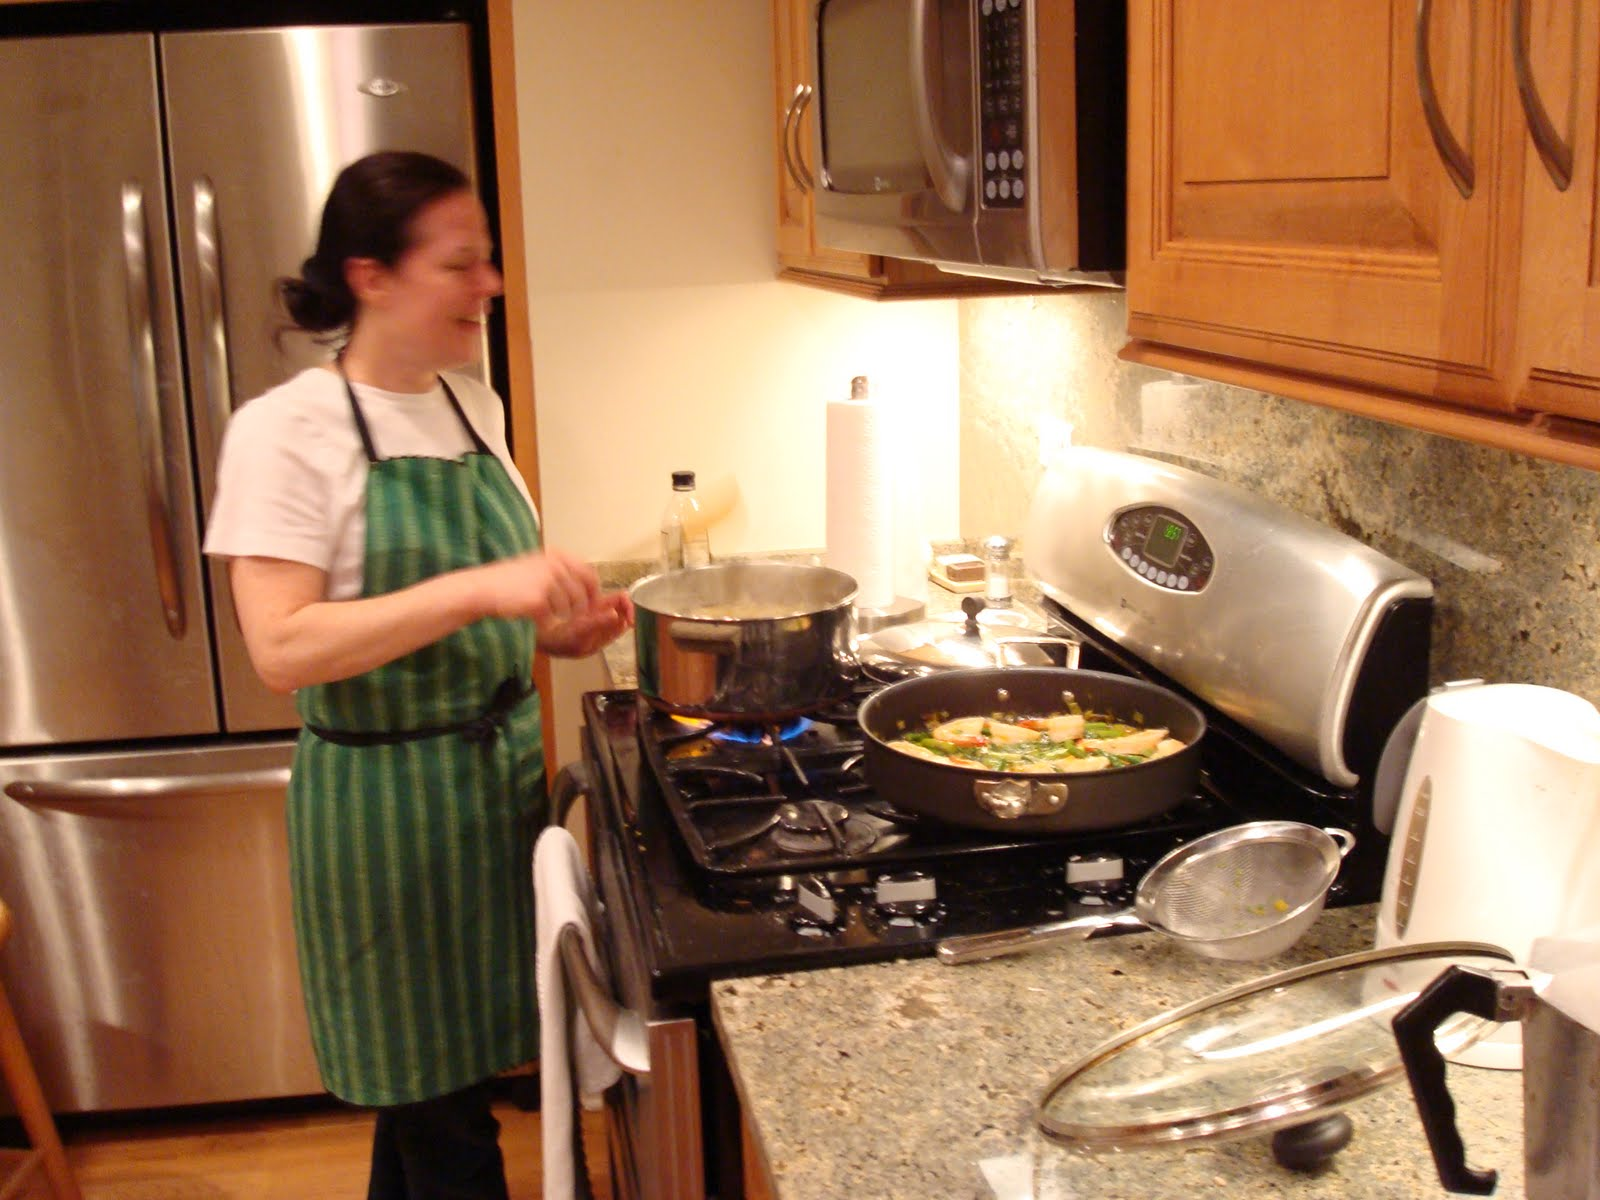 Home Kitchen Cooking The Jewel Box® Home Cooking In A Small Kitchen Monday Night Dinner